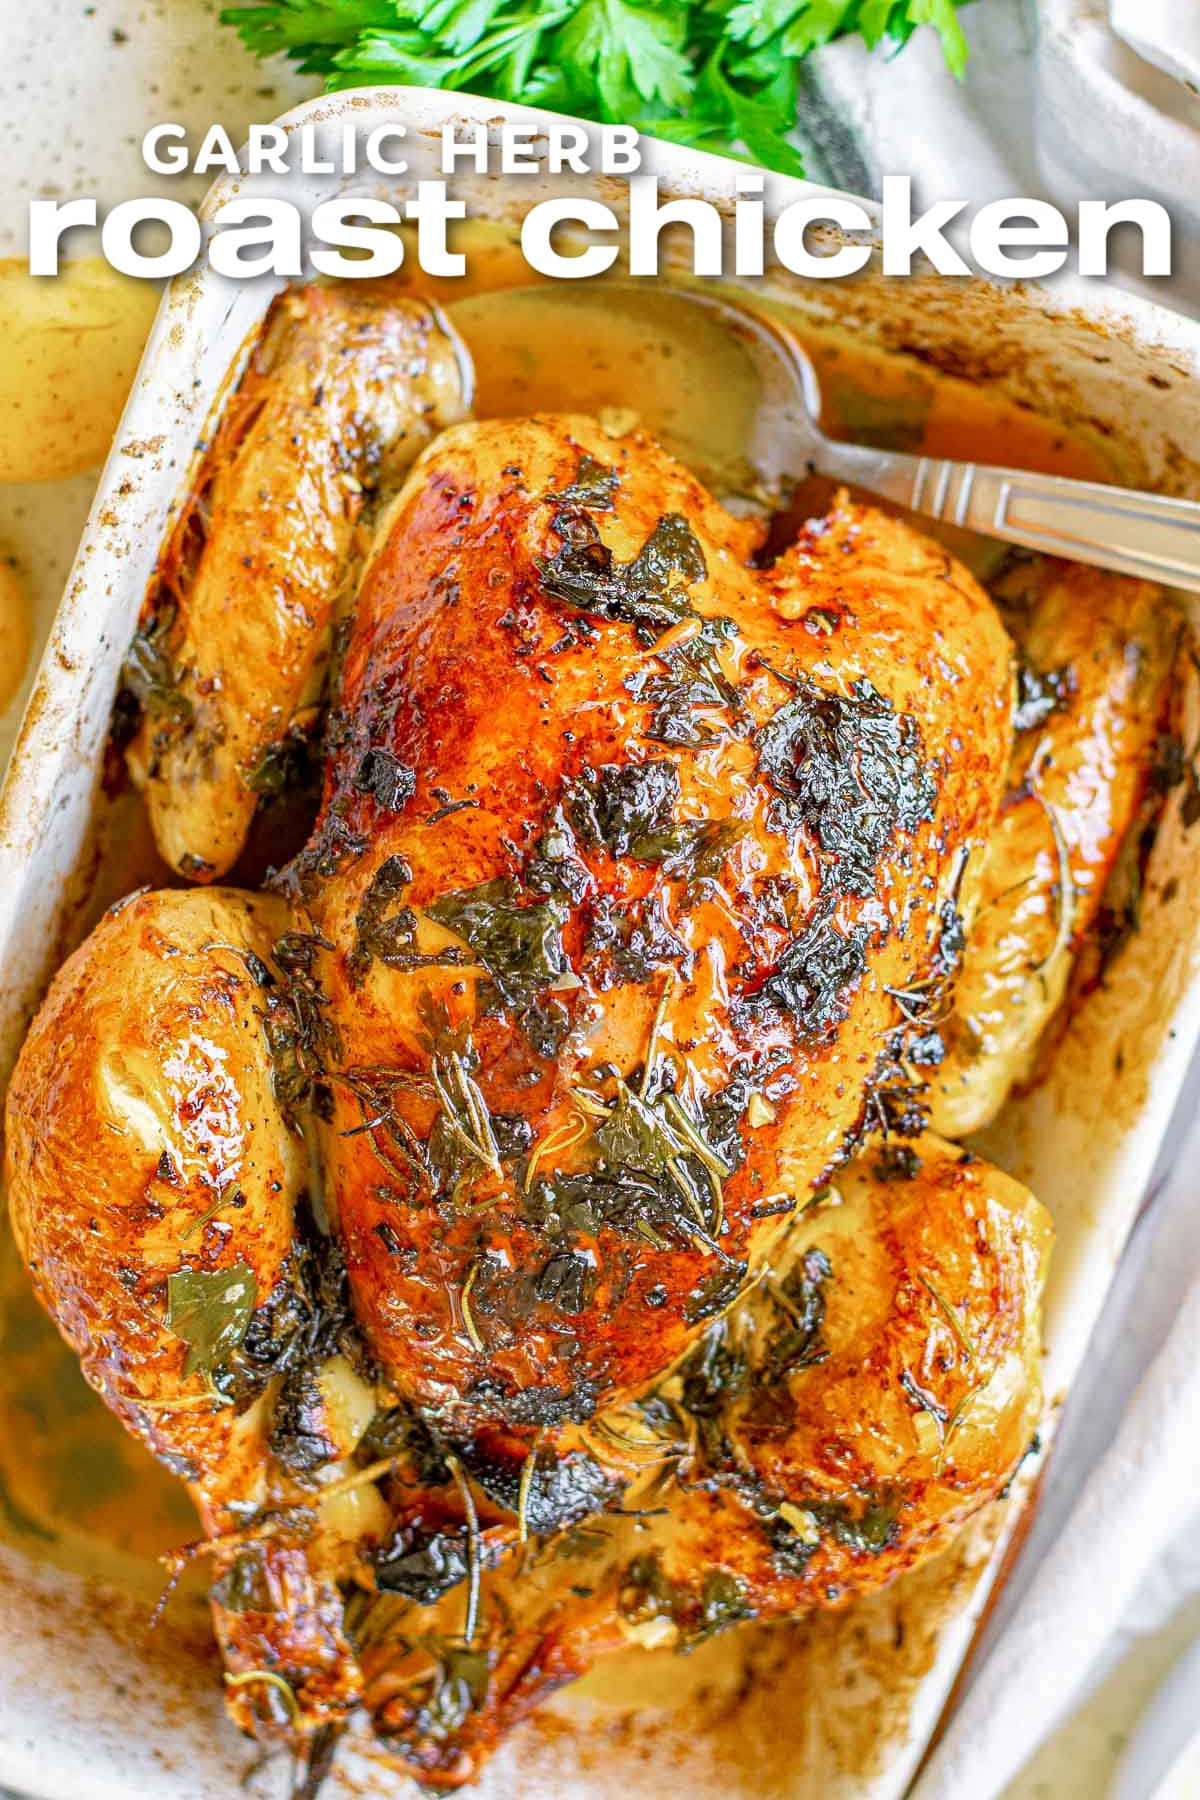 overhead look at roast chicken in white baking dish with crispy skin seasoned with fresh herbs. title at top of image.